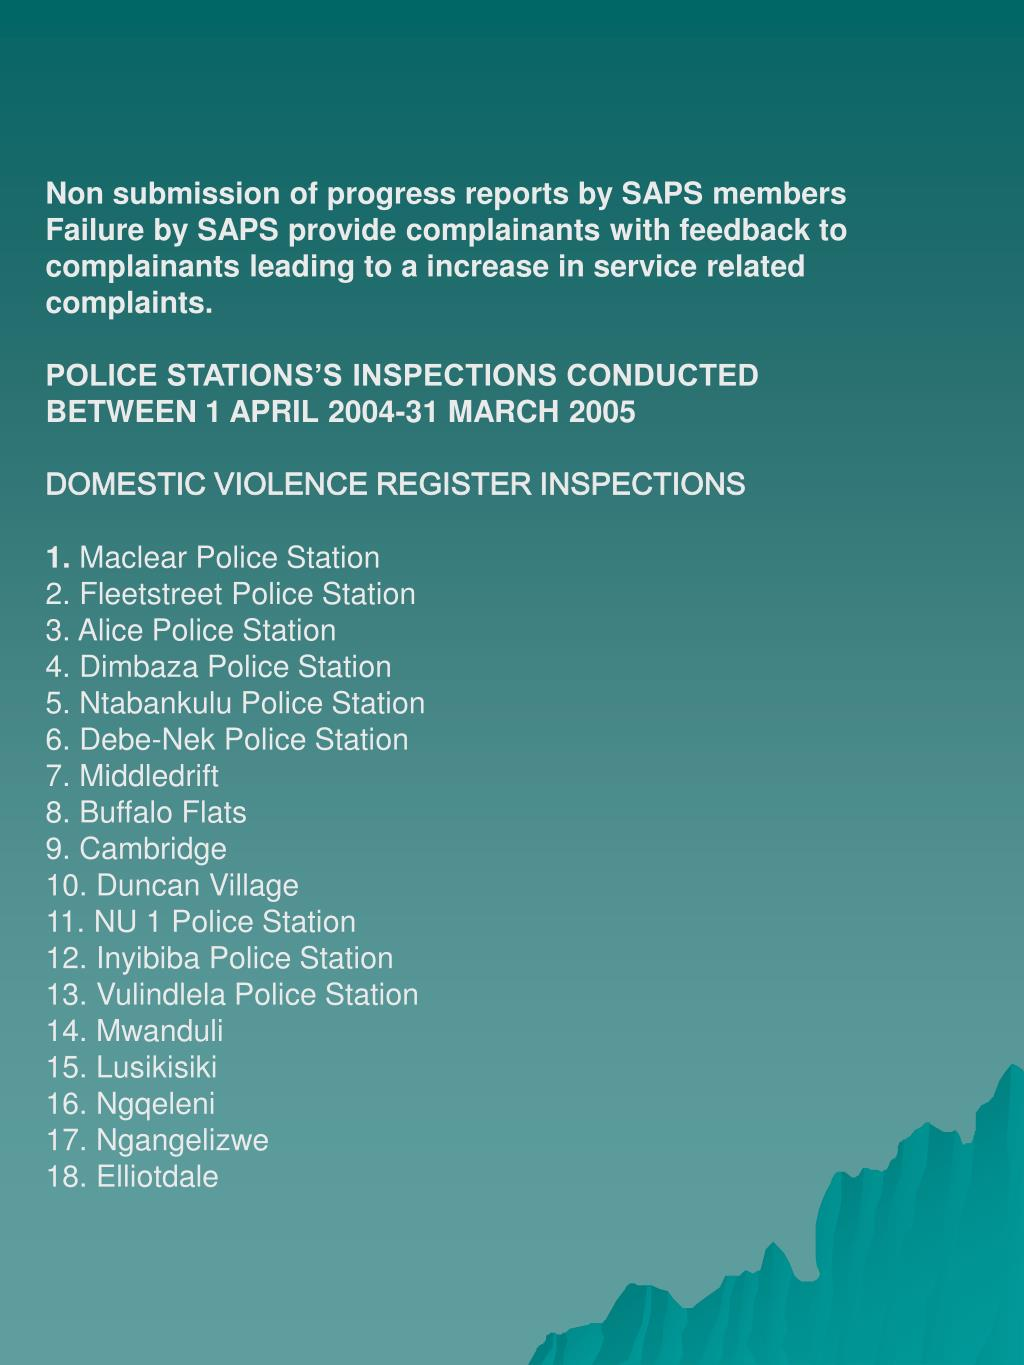 Non submission of progress reports by SAPS members